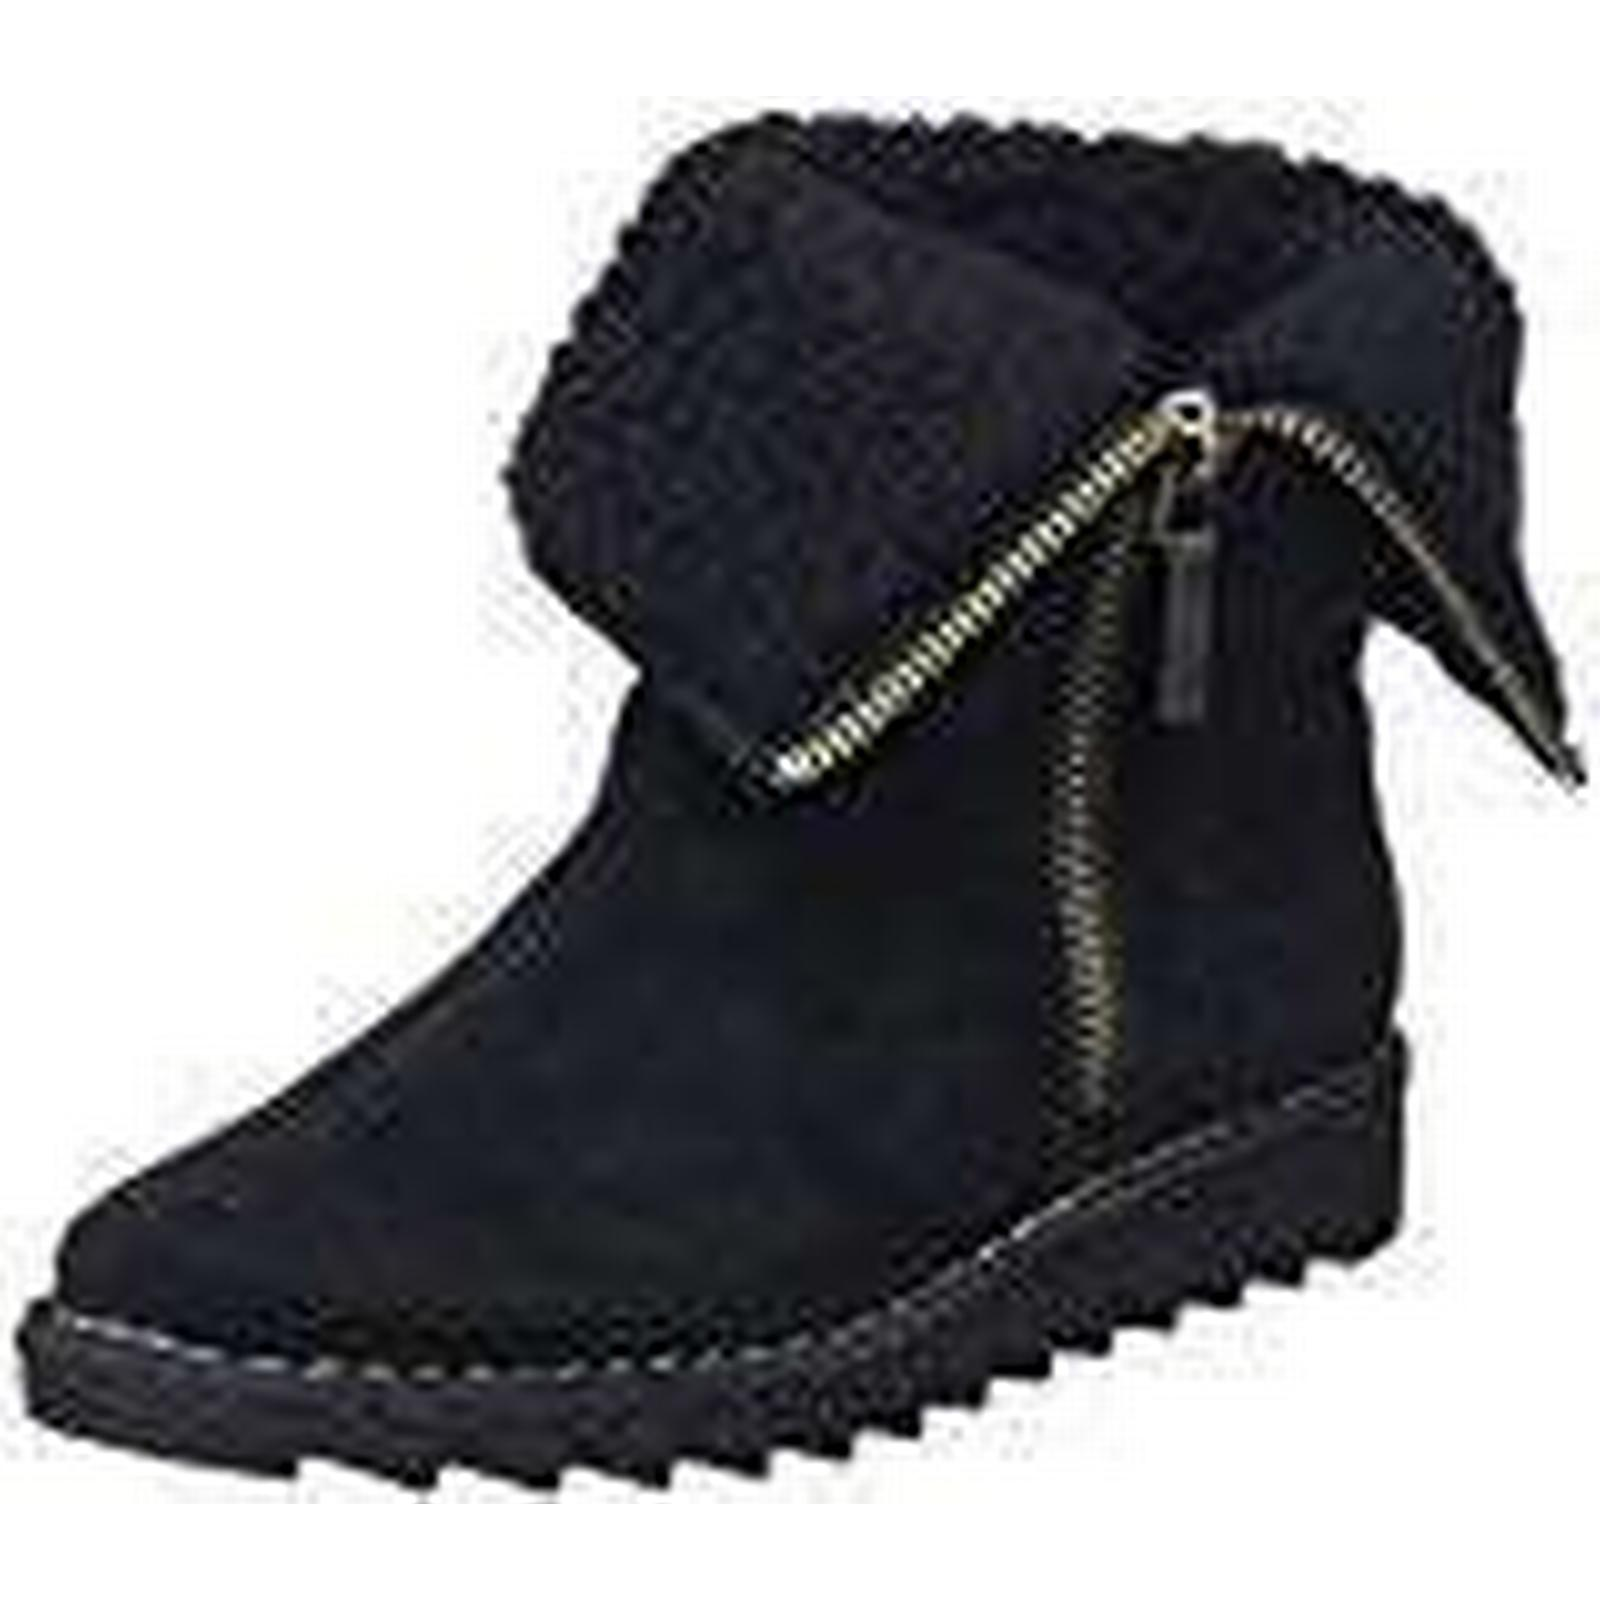 Clarks Women's Olso Beth Ankle UK Boots, (Black Suede), 6 UK Ankle 062873